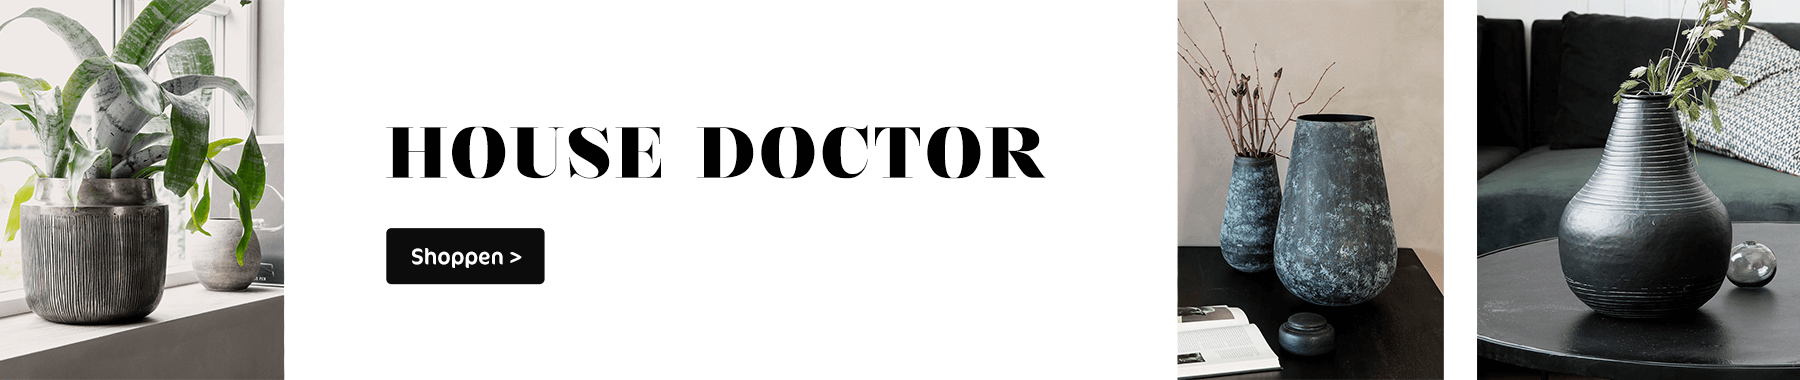 House Doctor 2021